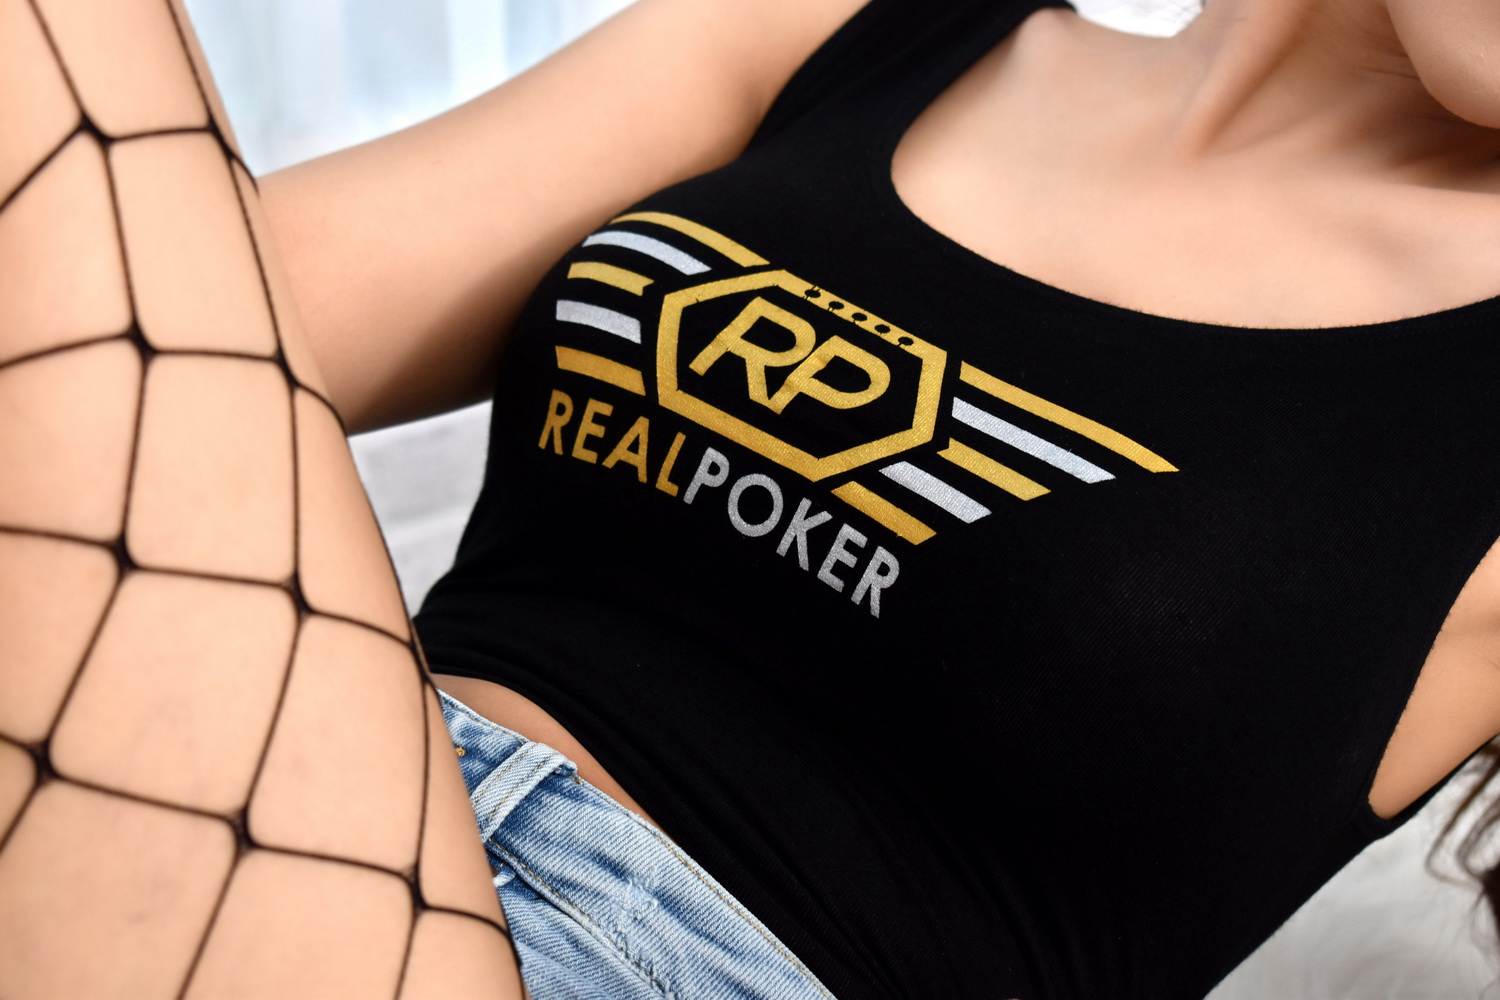 Real Poker Stores